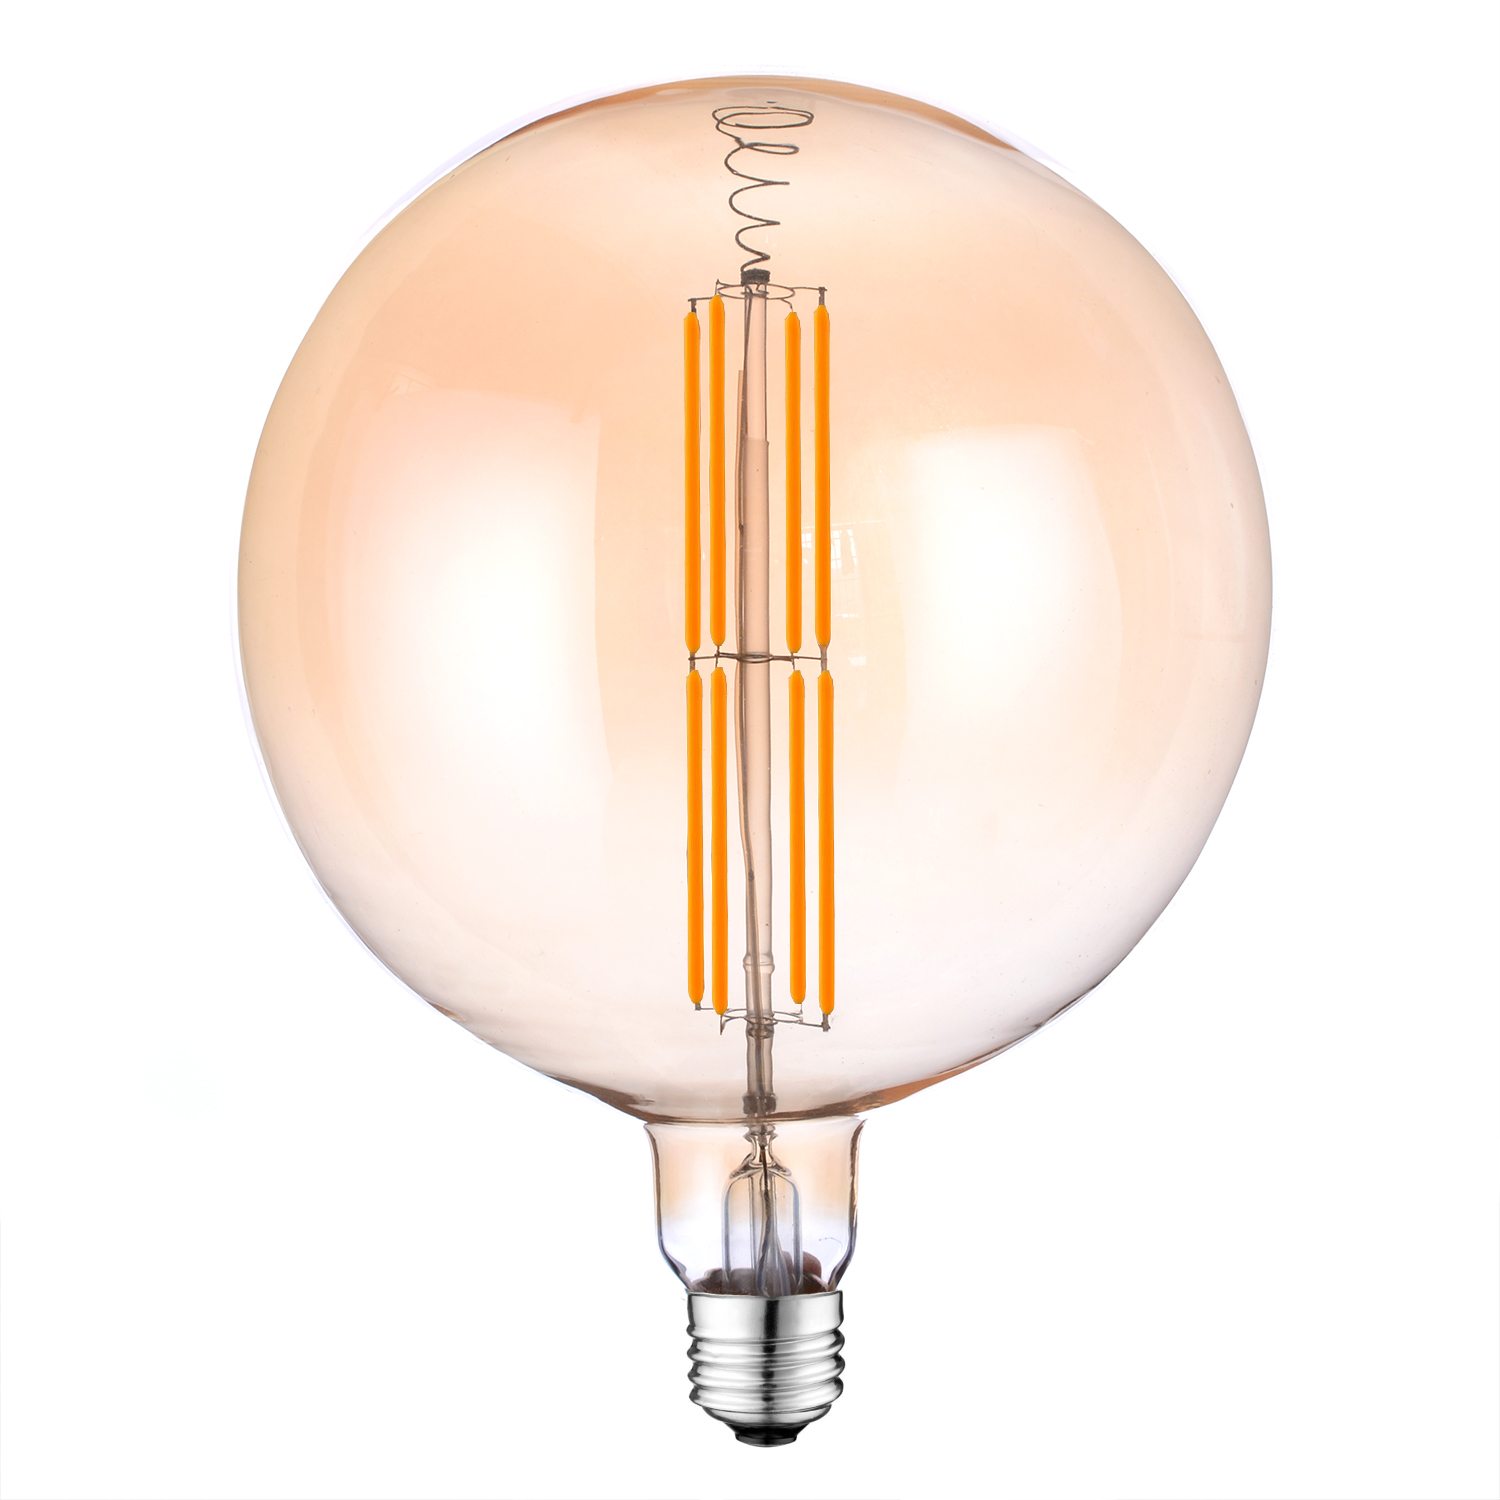 G180 LED Filament large globe light bulbs